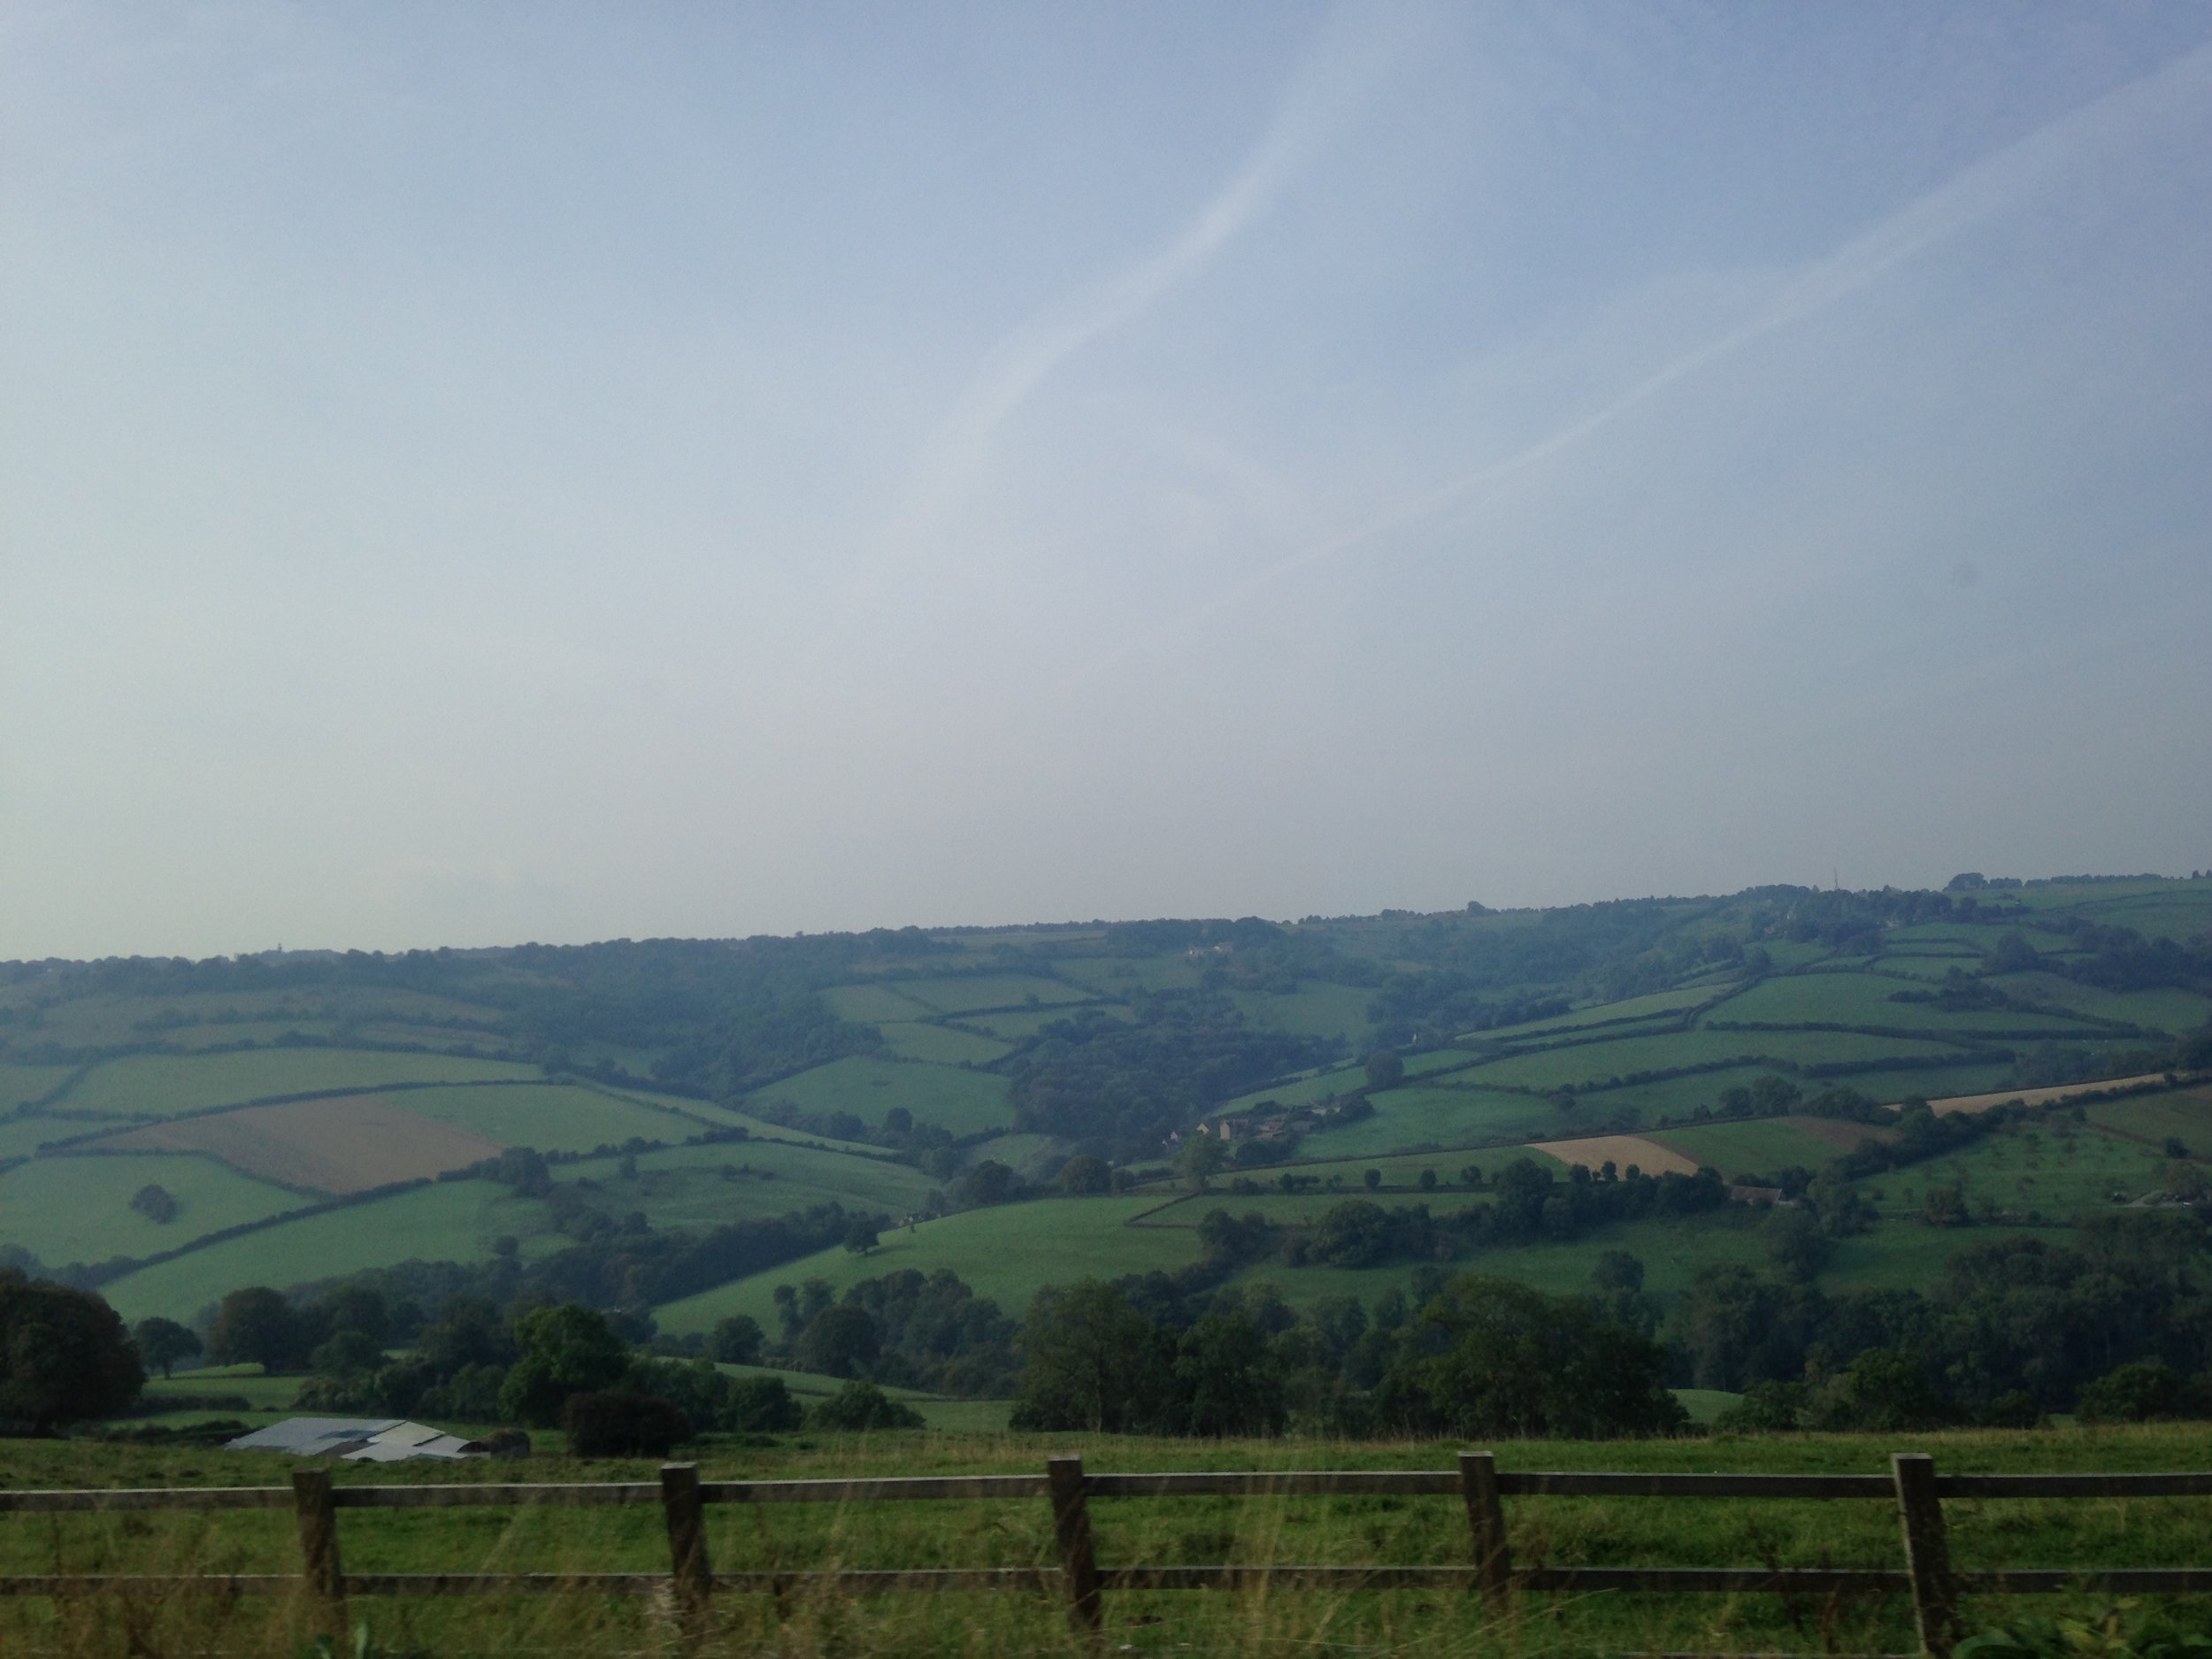 The patchwork fields on the way to Bath.